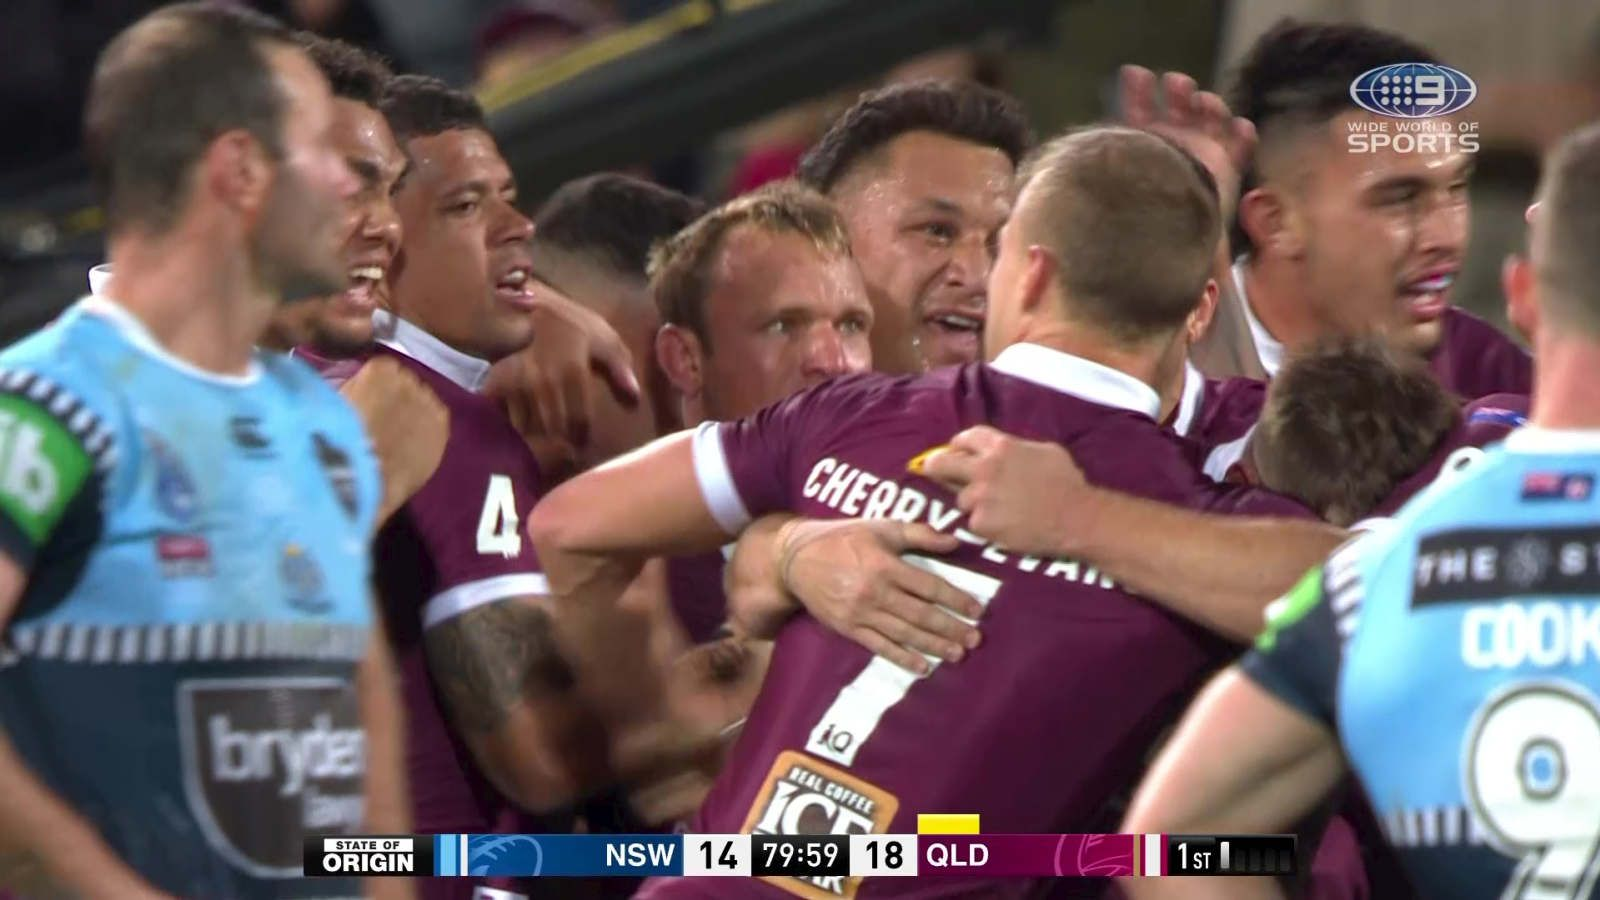 Queensland celebrate the win with a second left on the clock.